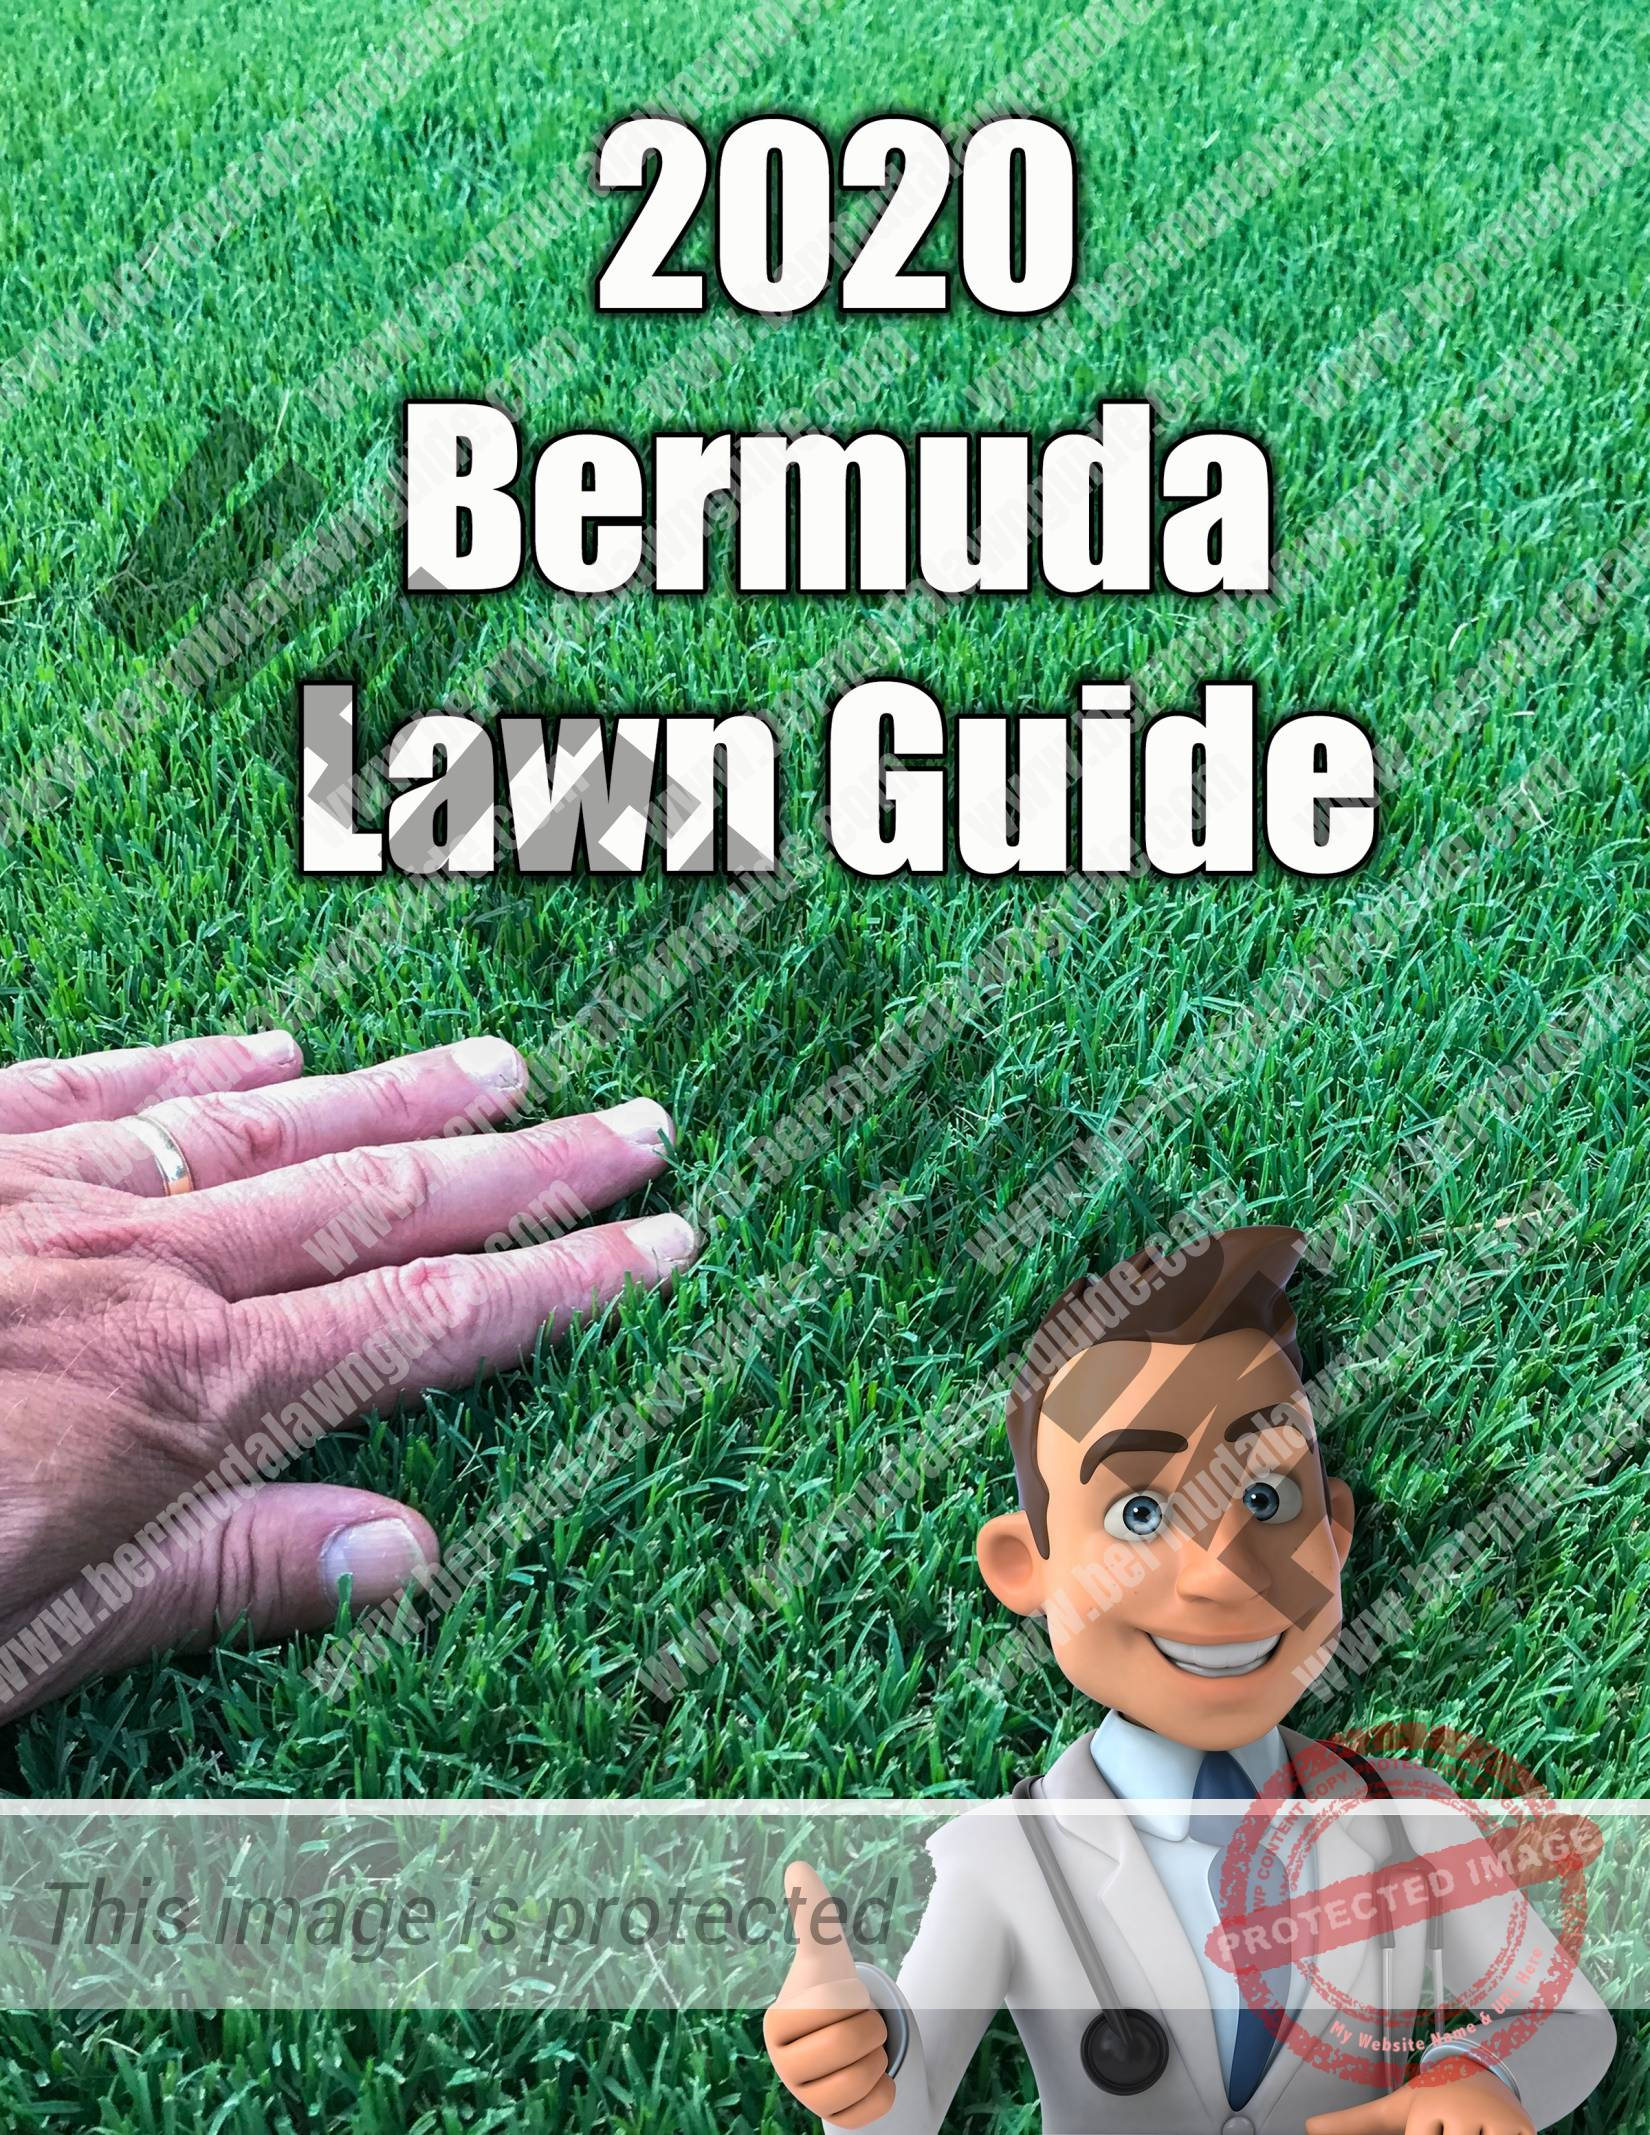 Bermuda Lawn Guide - How to care for bermuda grass.